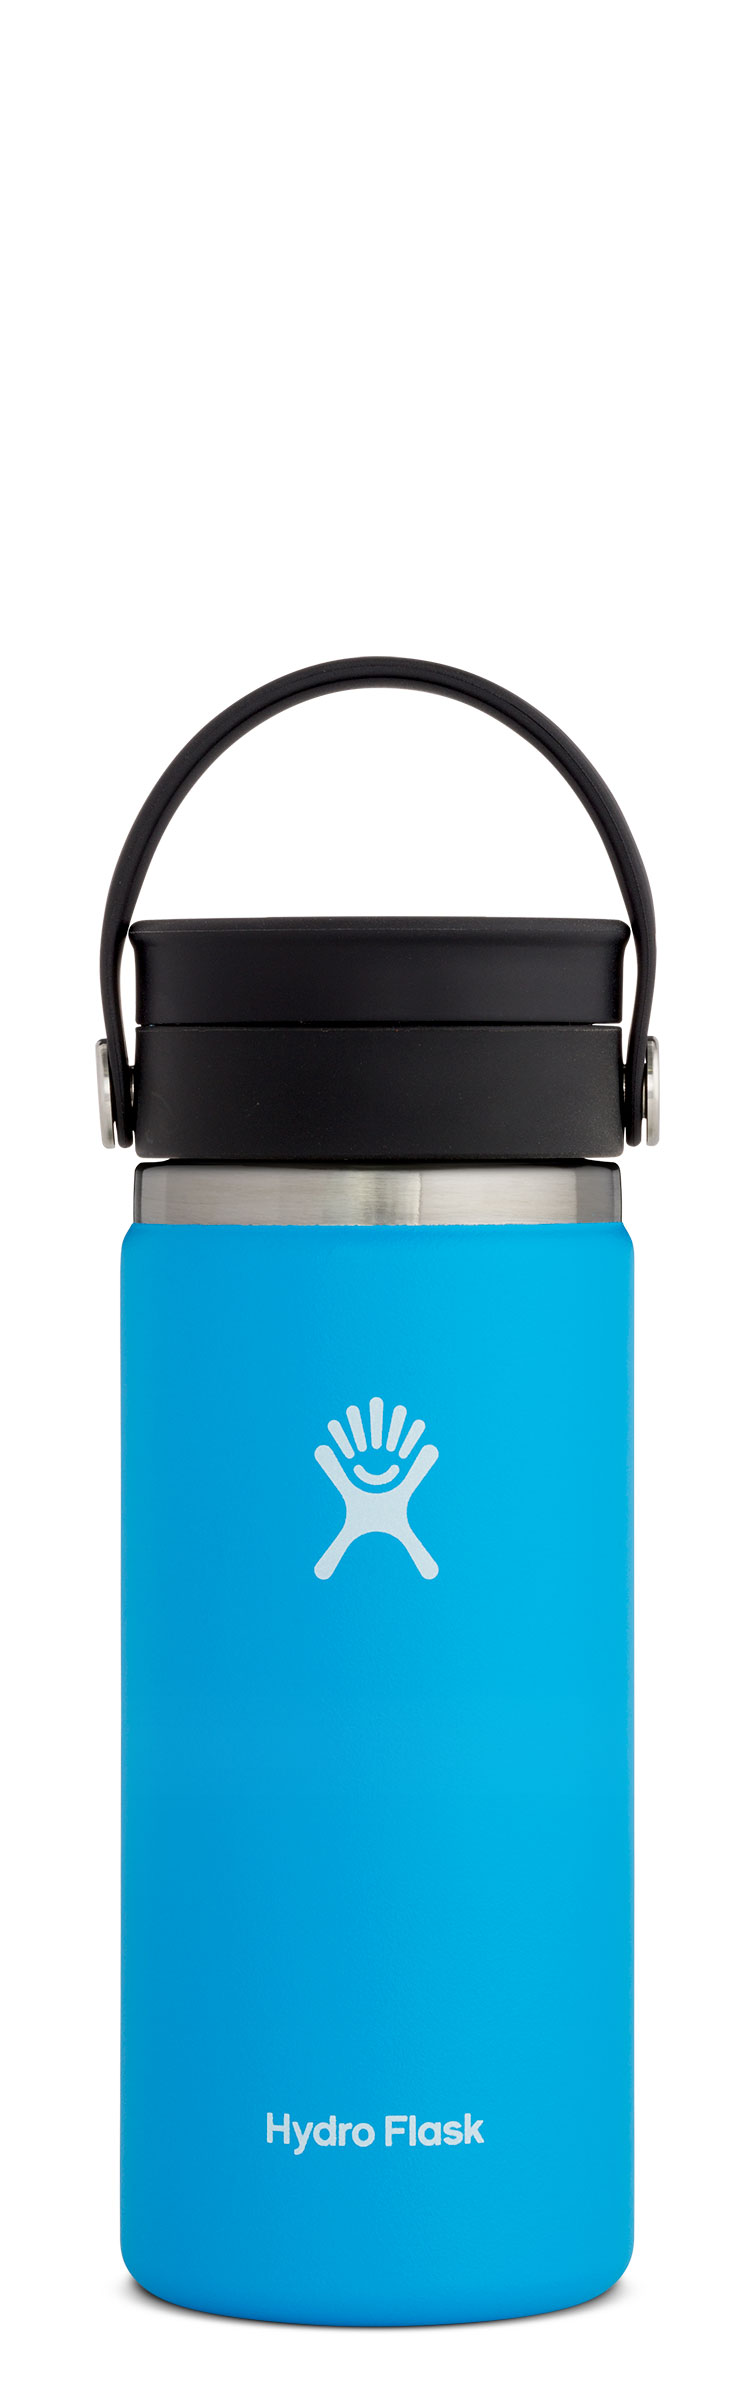 Hydro Flask 16 oz Wide Mouth Flex Sip Pacific